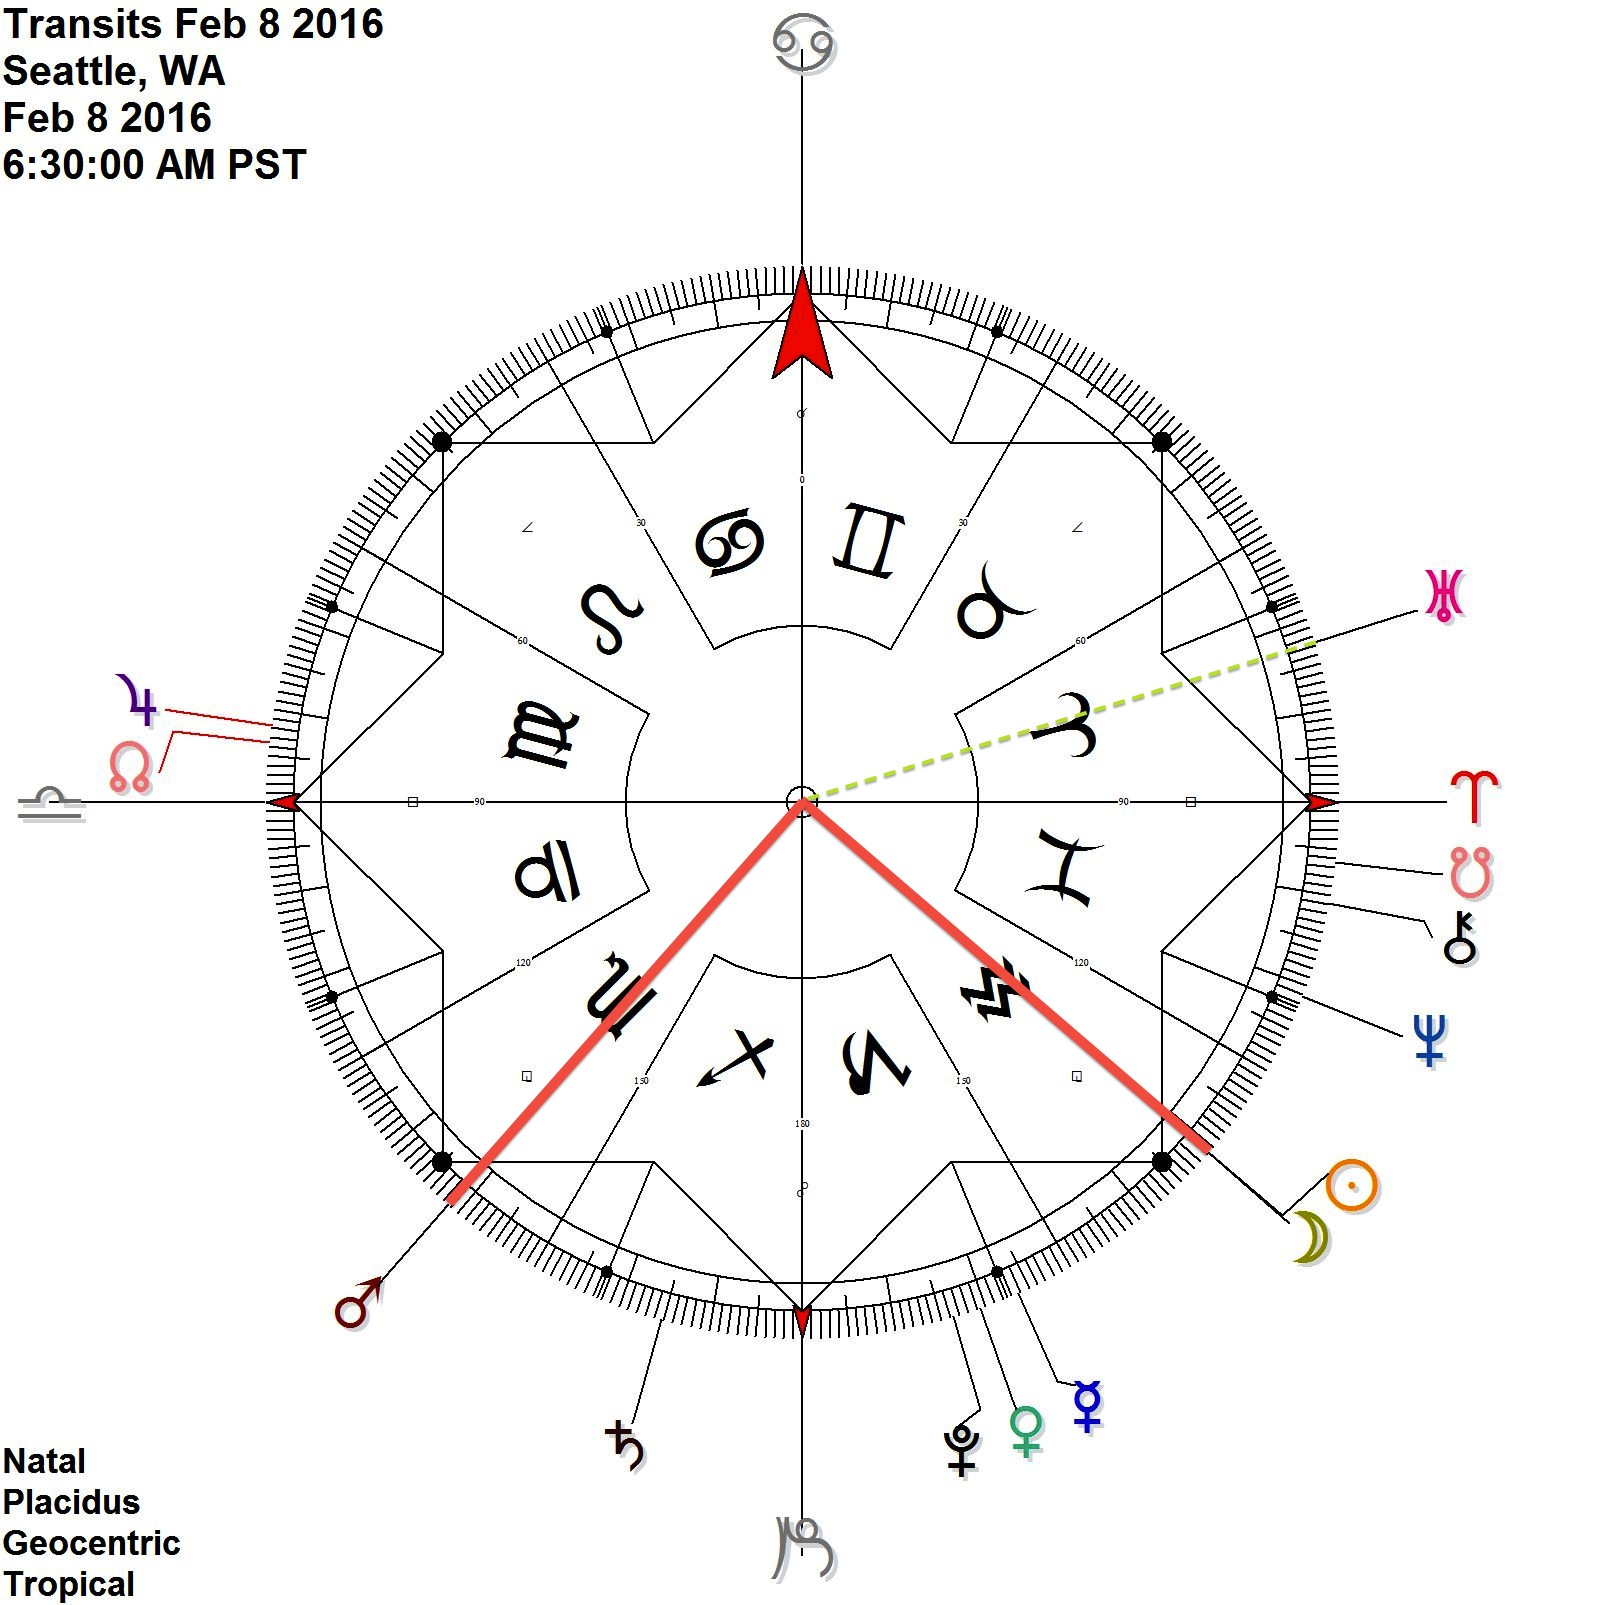 New Moon dominated in partile square by Mars in Scorpio as it's the sign of the moon's fall: the public or populace may feel down or damaged (or 'the feminine' takes another hit)  New Moon is also in close sextile to Uranus in Aries Aries, the sign of the Sun's exaltation, makes uranus work for the Sun, change coming